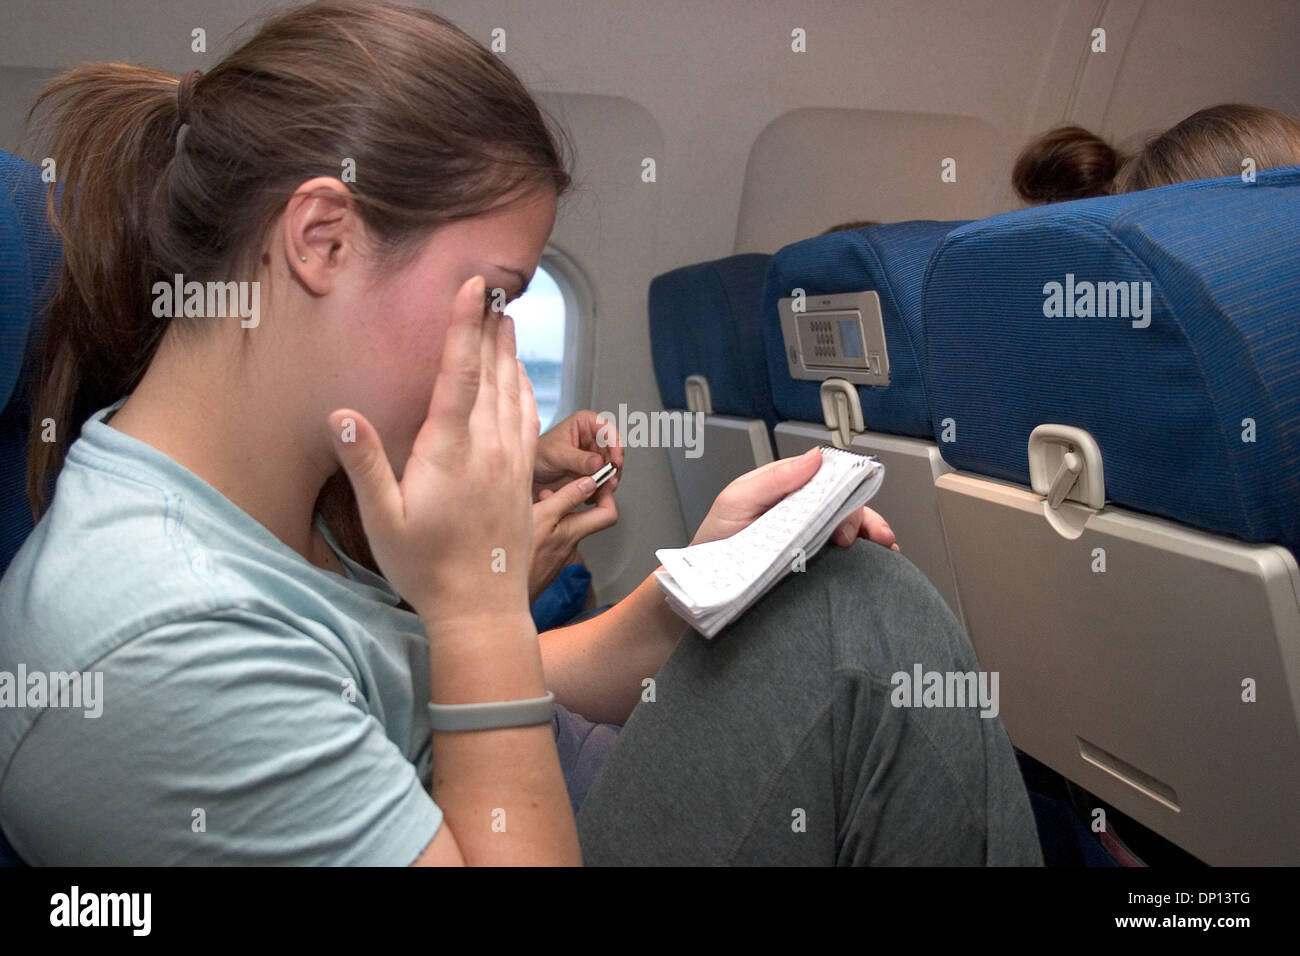 Apr 15, 2006; New Orleans, LA, USA; Emily Arthur, a student at Fresno State University, wipes away a tear as she reads a notebook filled with comments by her fellow disaster relief volunteers. During their volunteer assignment with Habitat for Humanity in the New Orleans area, her group was assigned to write in each other's notebooks at least once during the week, but they weren't  - Stock Image